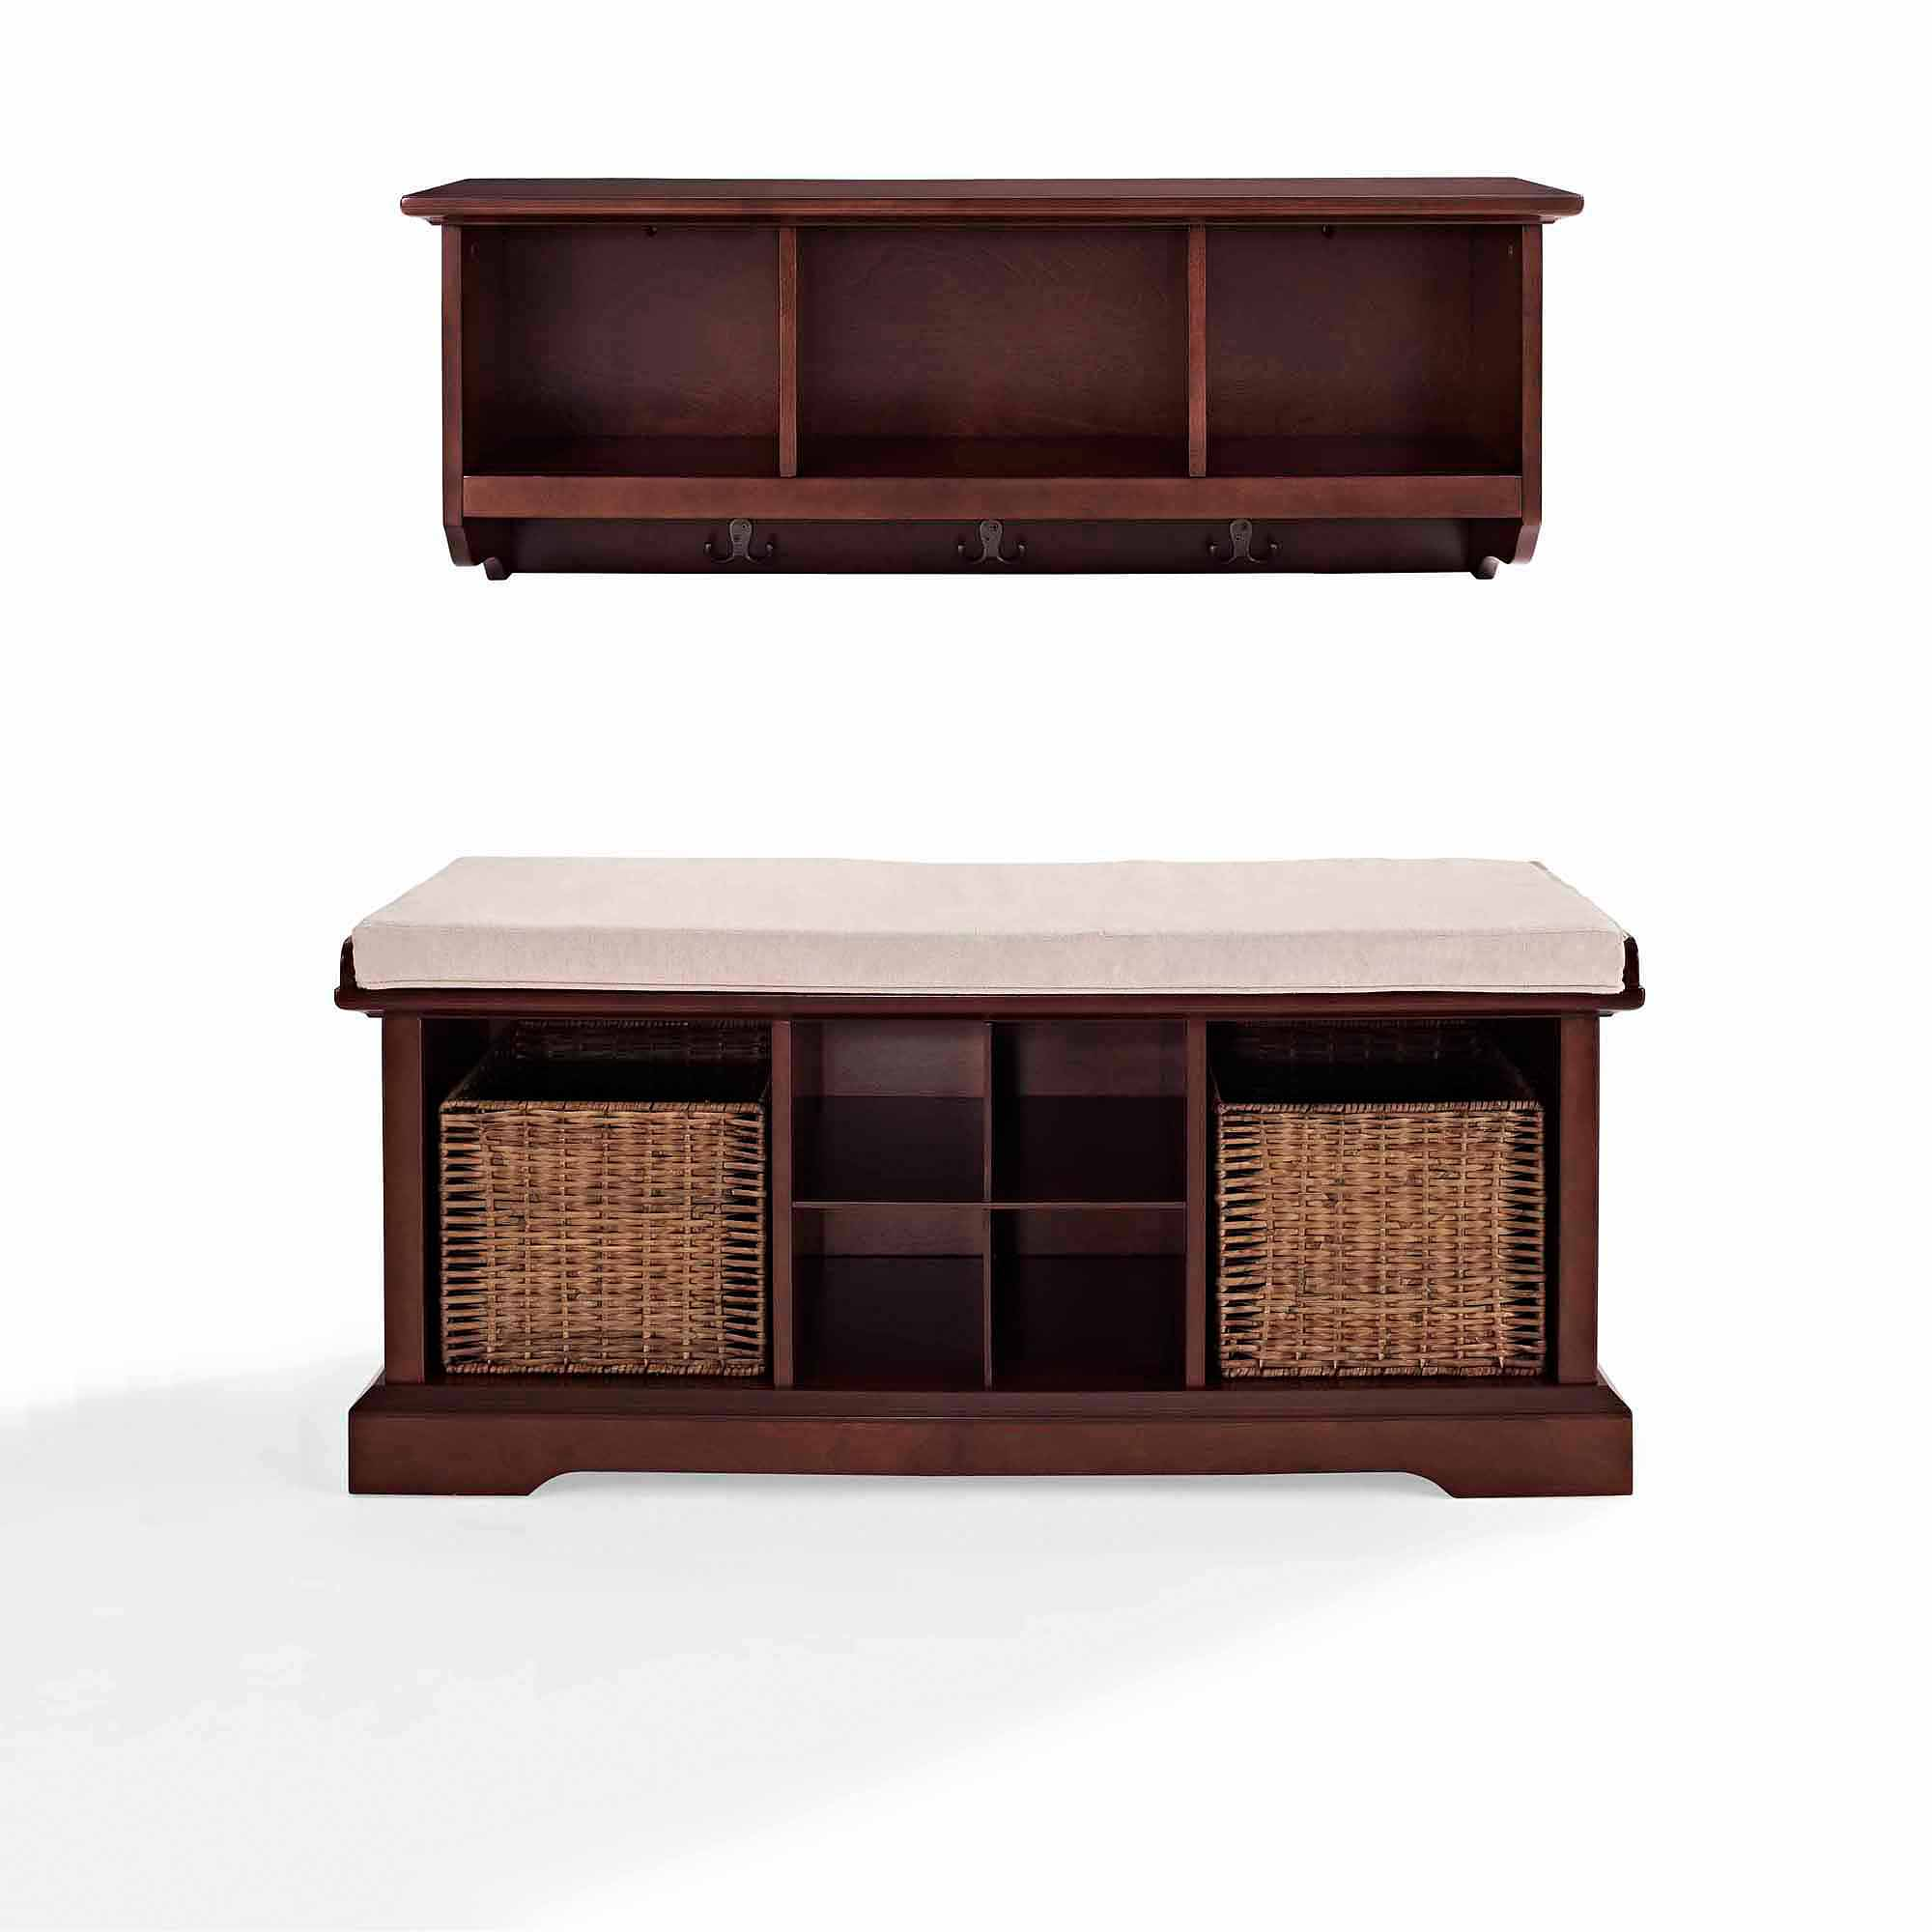 Peachy Crosley Furniture Brennan 2 Piece Entryway Bench And Shelf Set Short Links Chair Design For Home Short Linksinfo